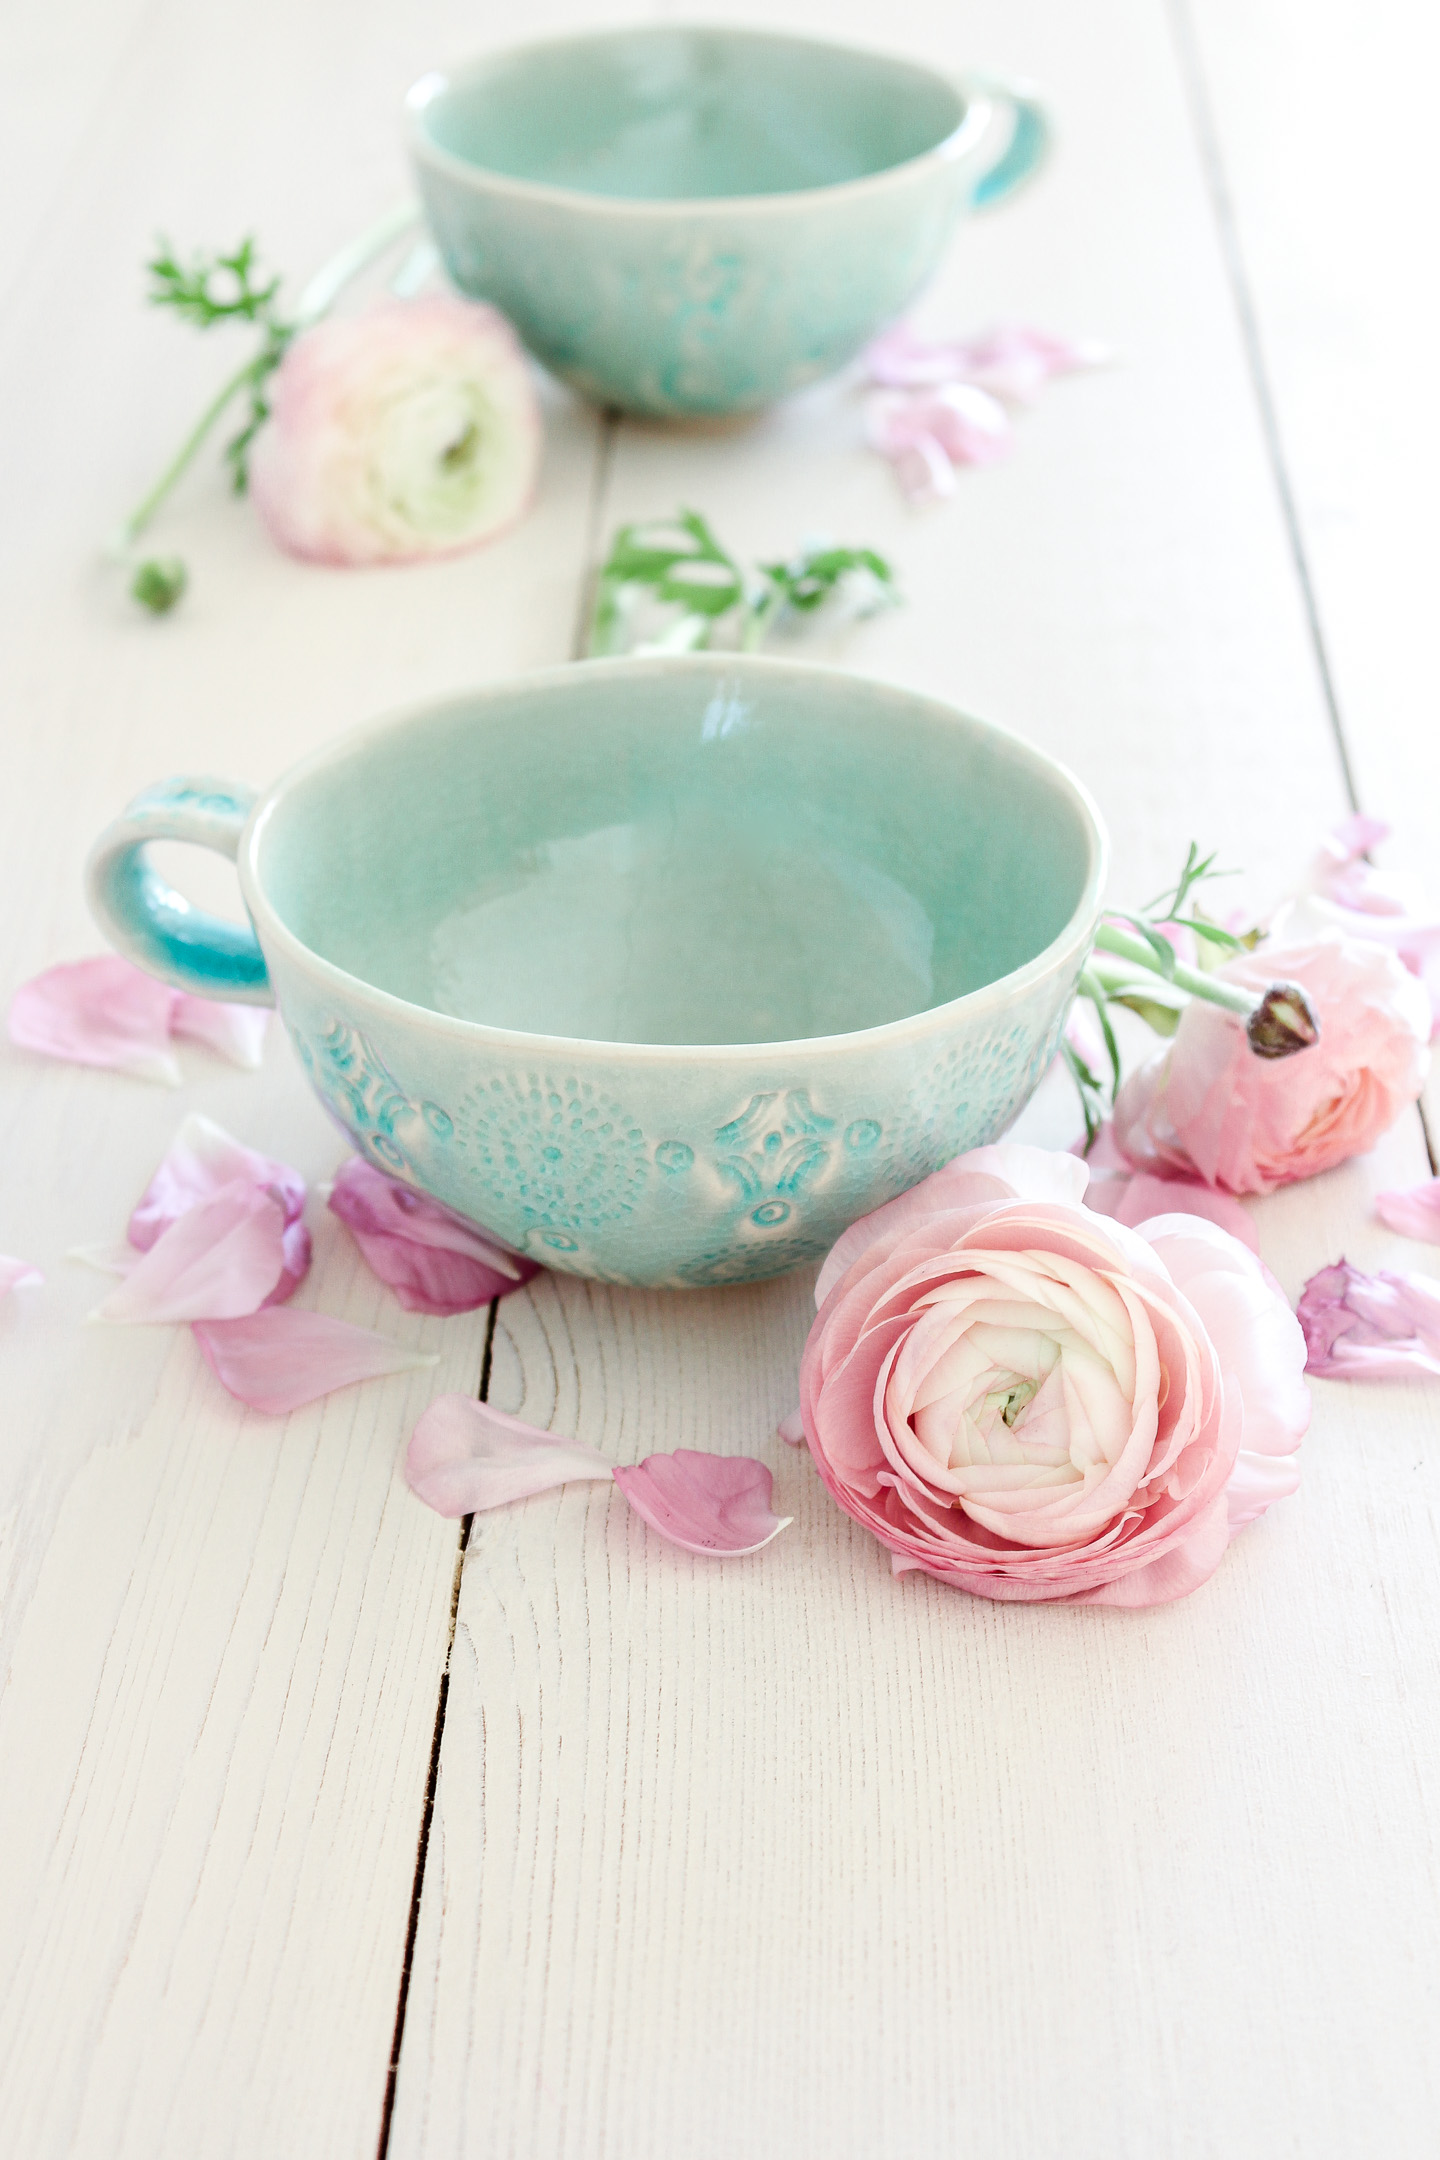 Pink pastel ranunculus flowers with blue turquoise cups.